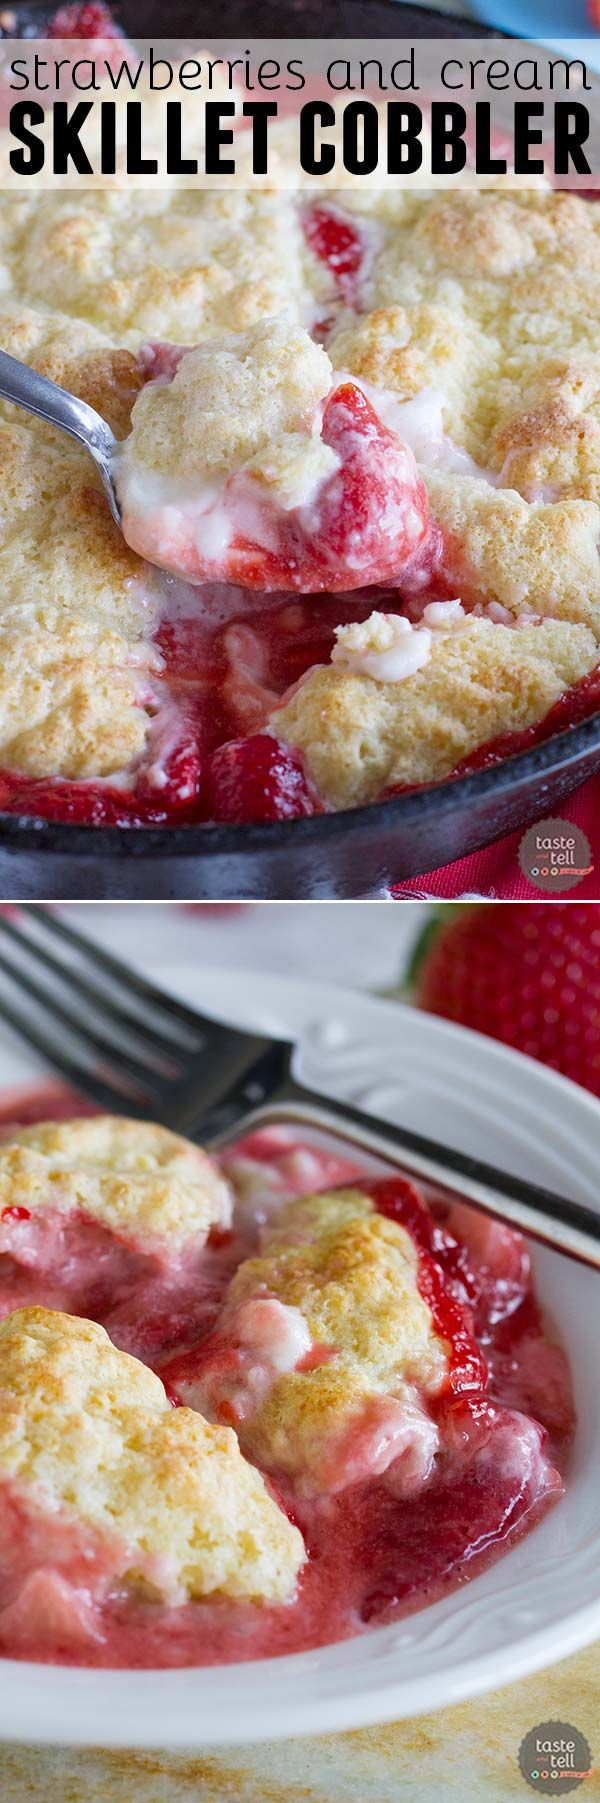 Perfect for serving and eating with friends, this Strawberries and Cream Skillet Cobbler is down-home deliciousness.: